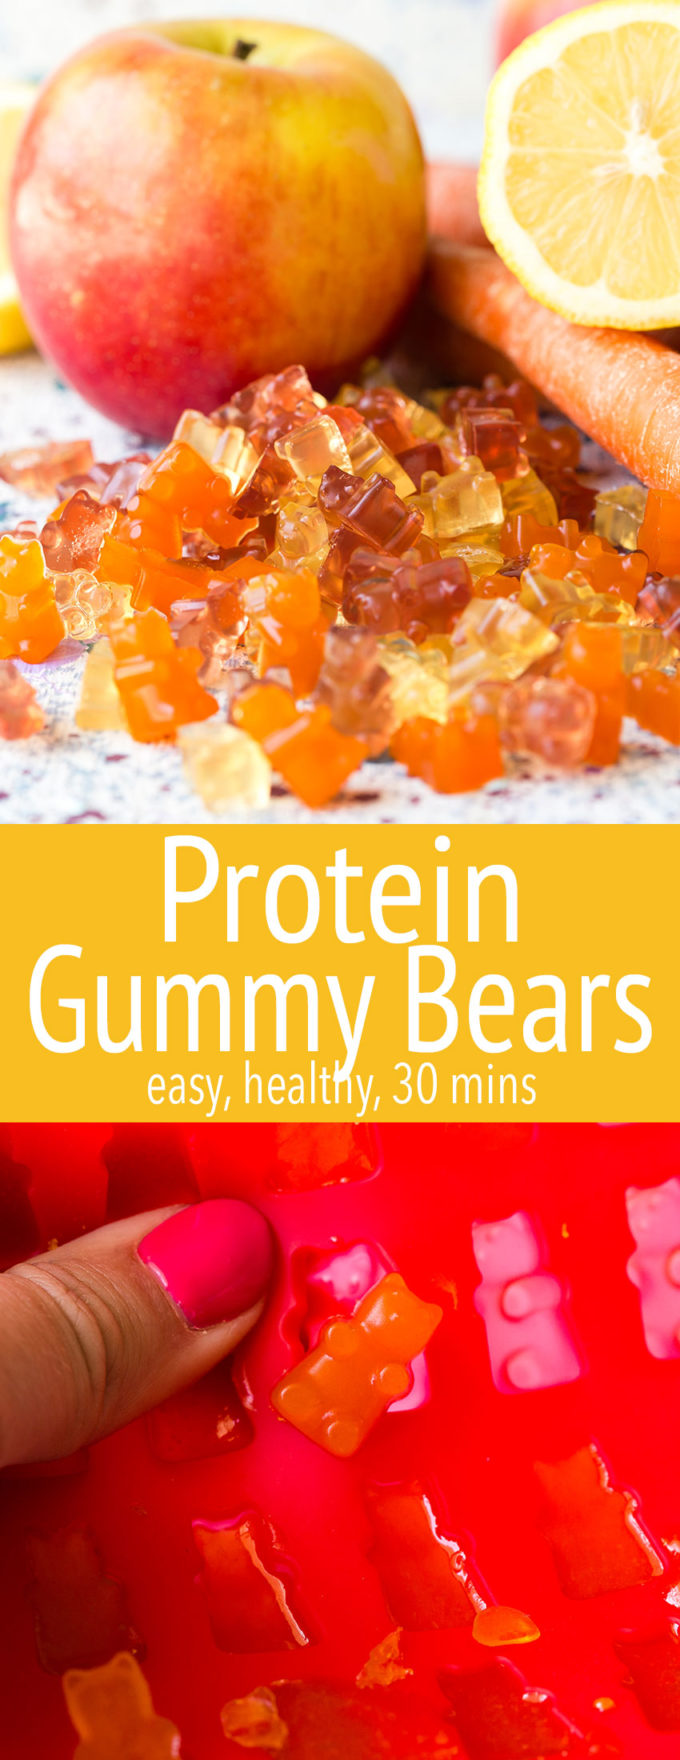 Make your own protein gummy bears for a great, easy, treat that you can feel good about.